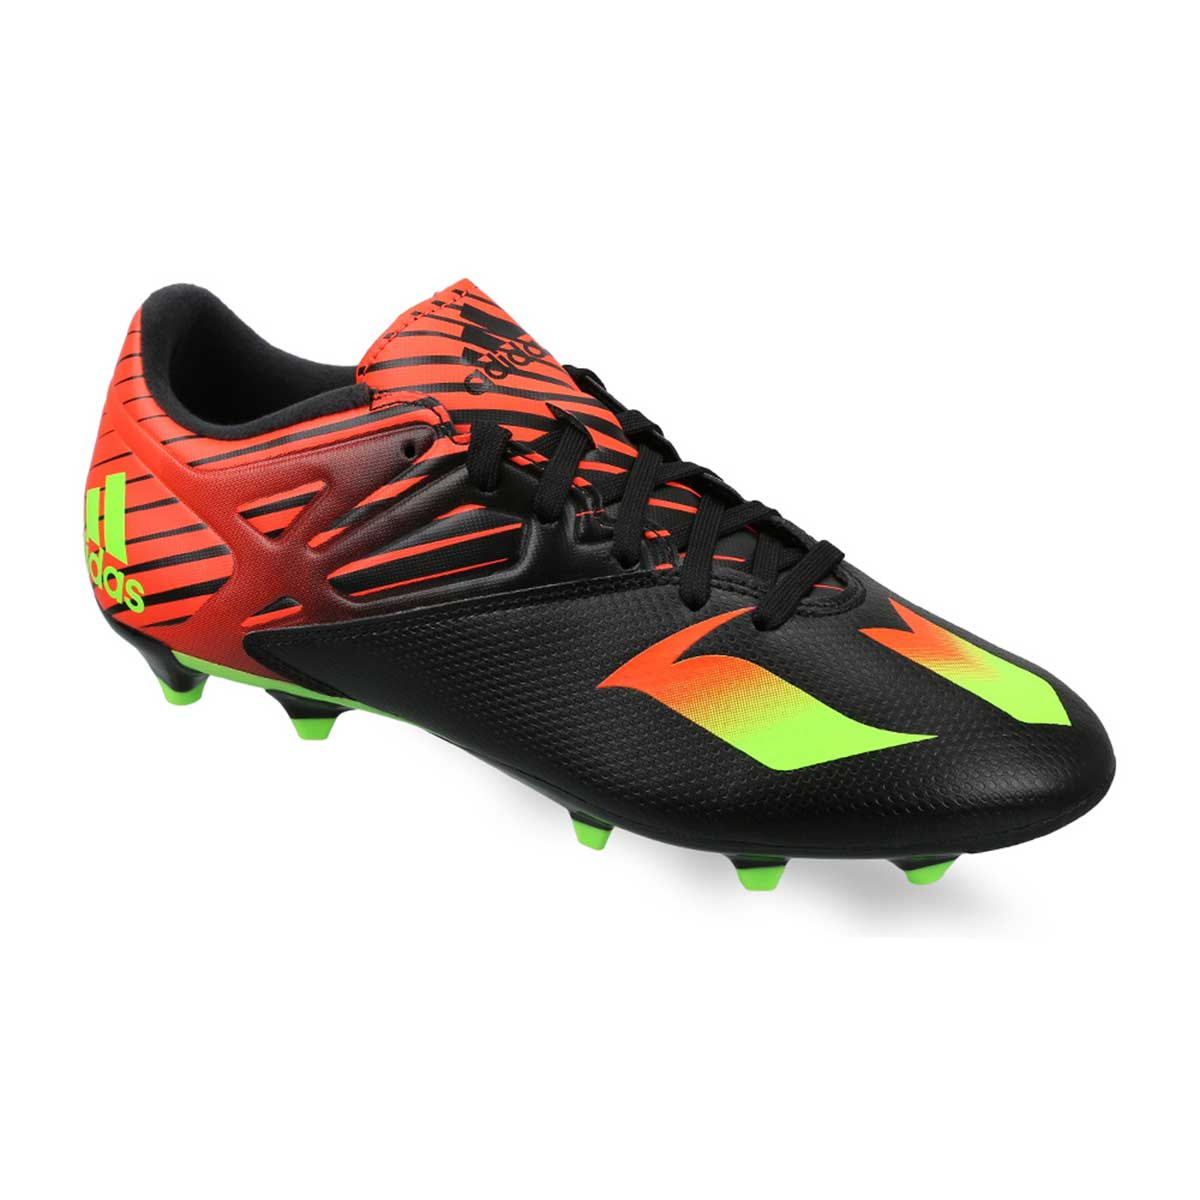 Buy Adidas Messi 15 3 Football Shoes Black Green Red Online